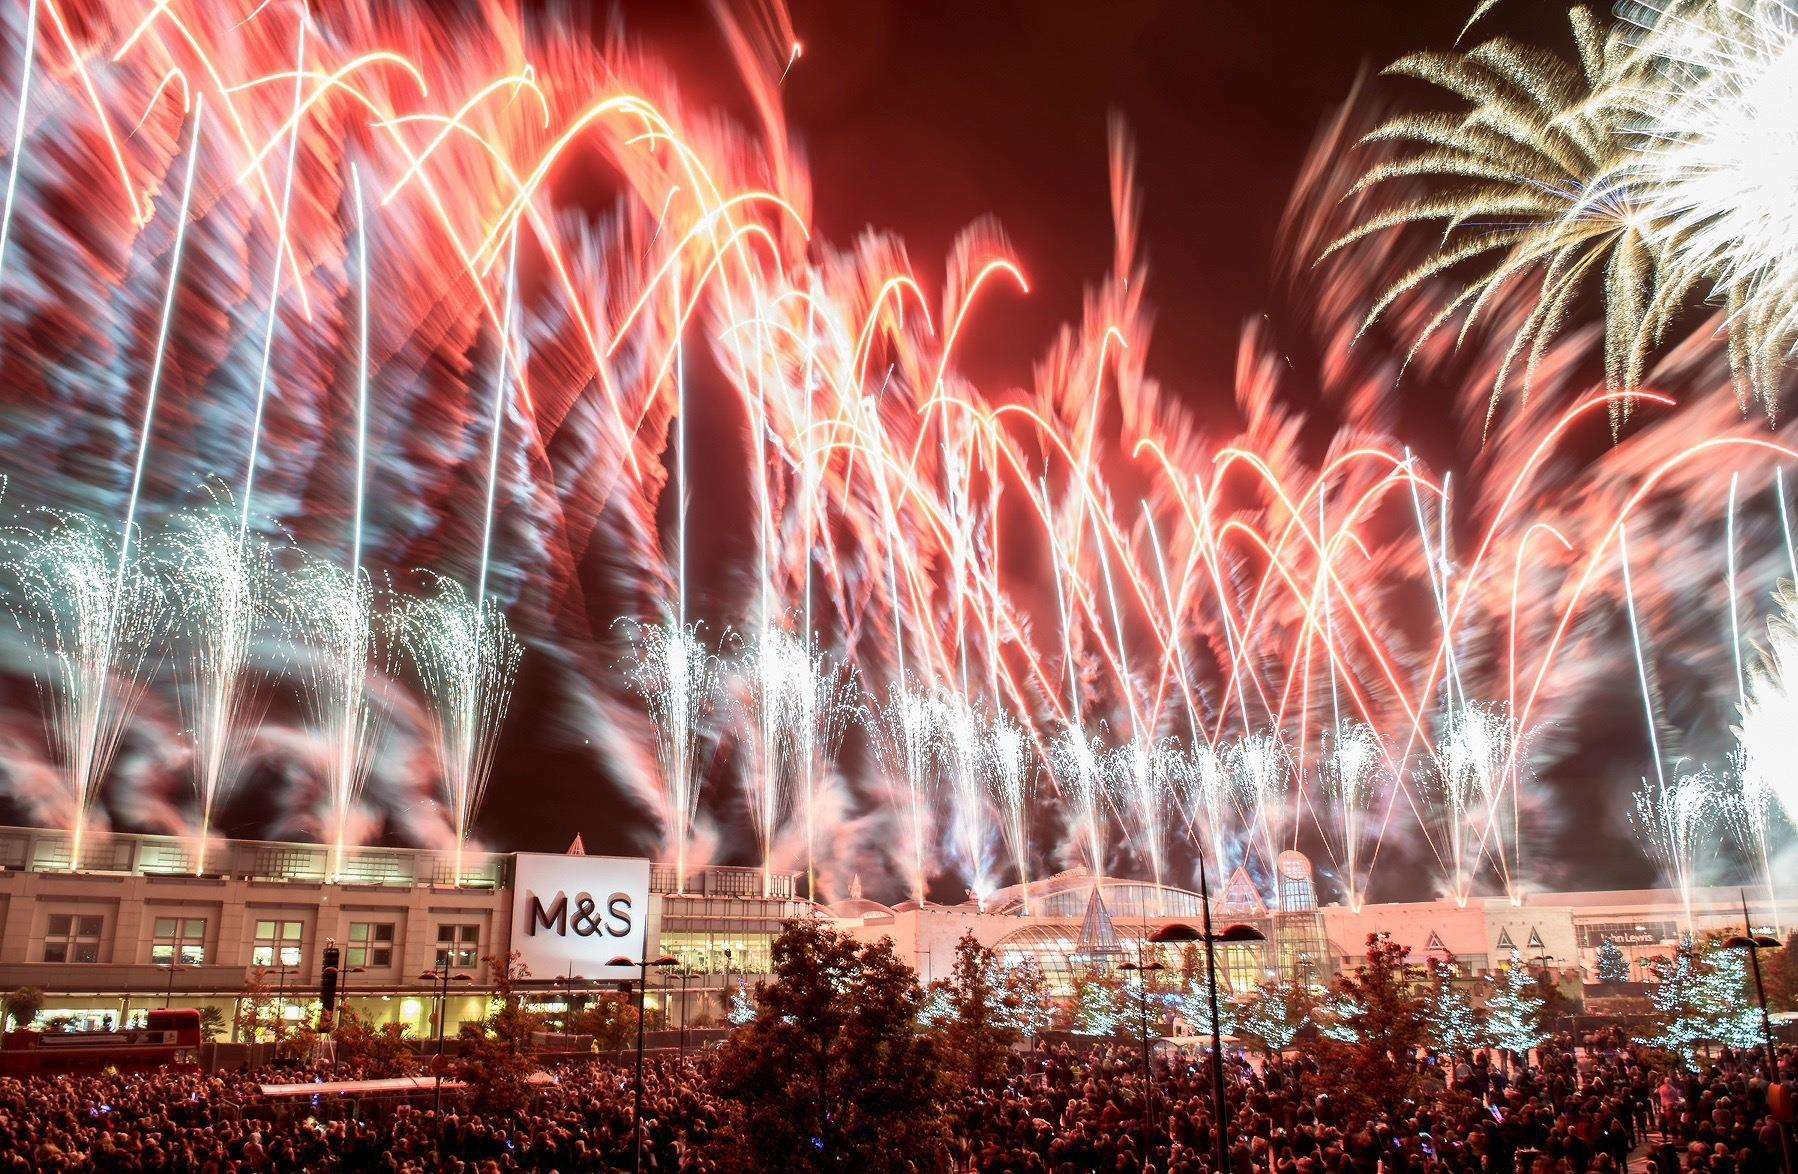 Dartford: Bluewater Christmas lights switch-on and Christmas calendar unveiled